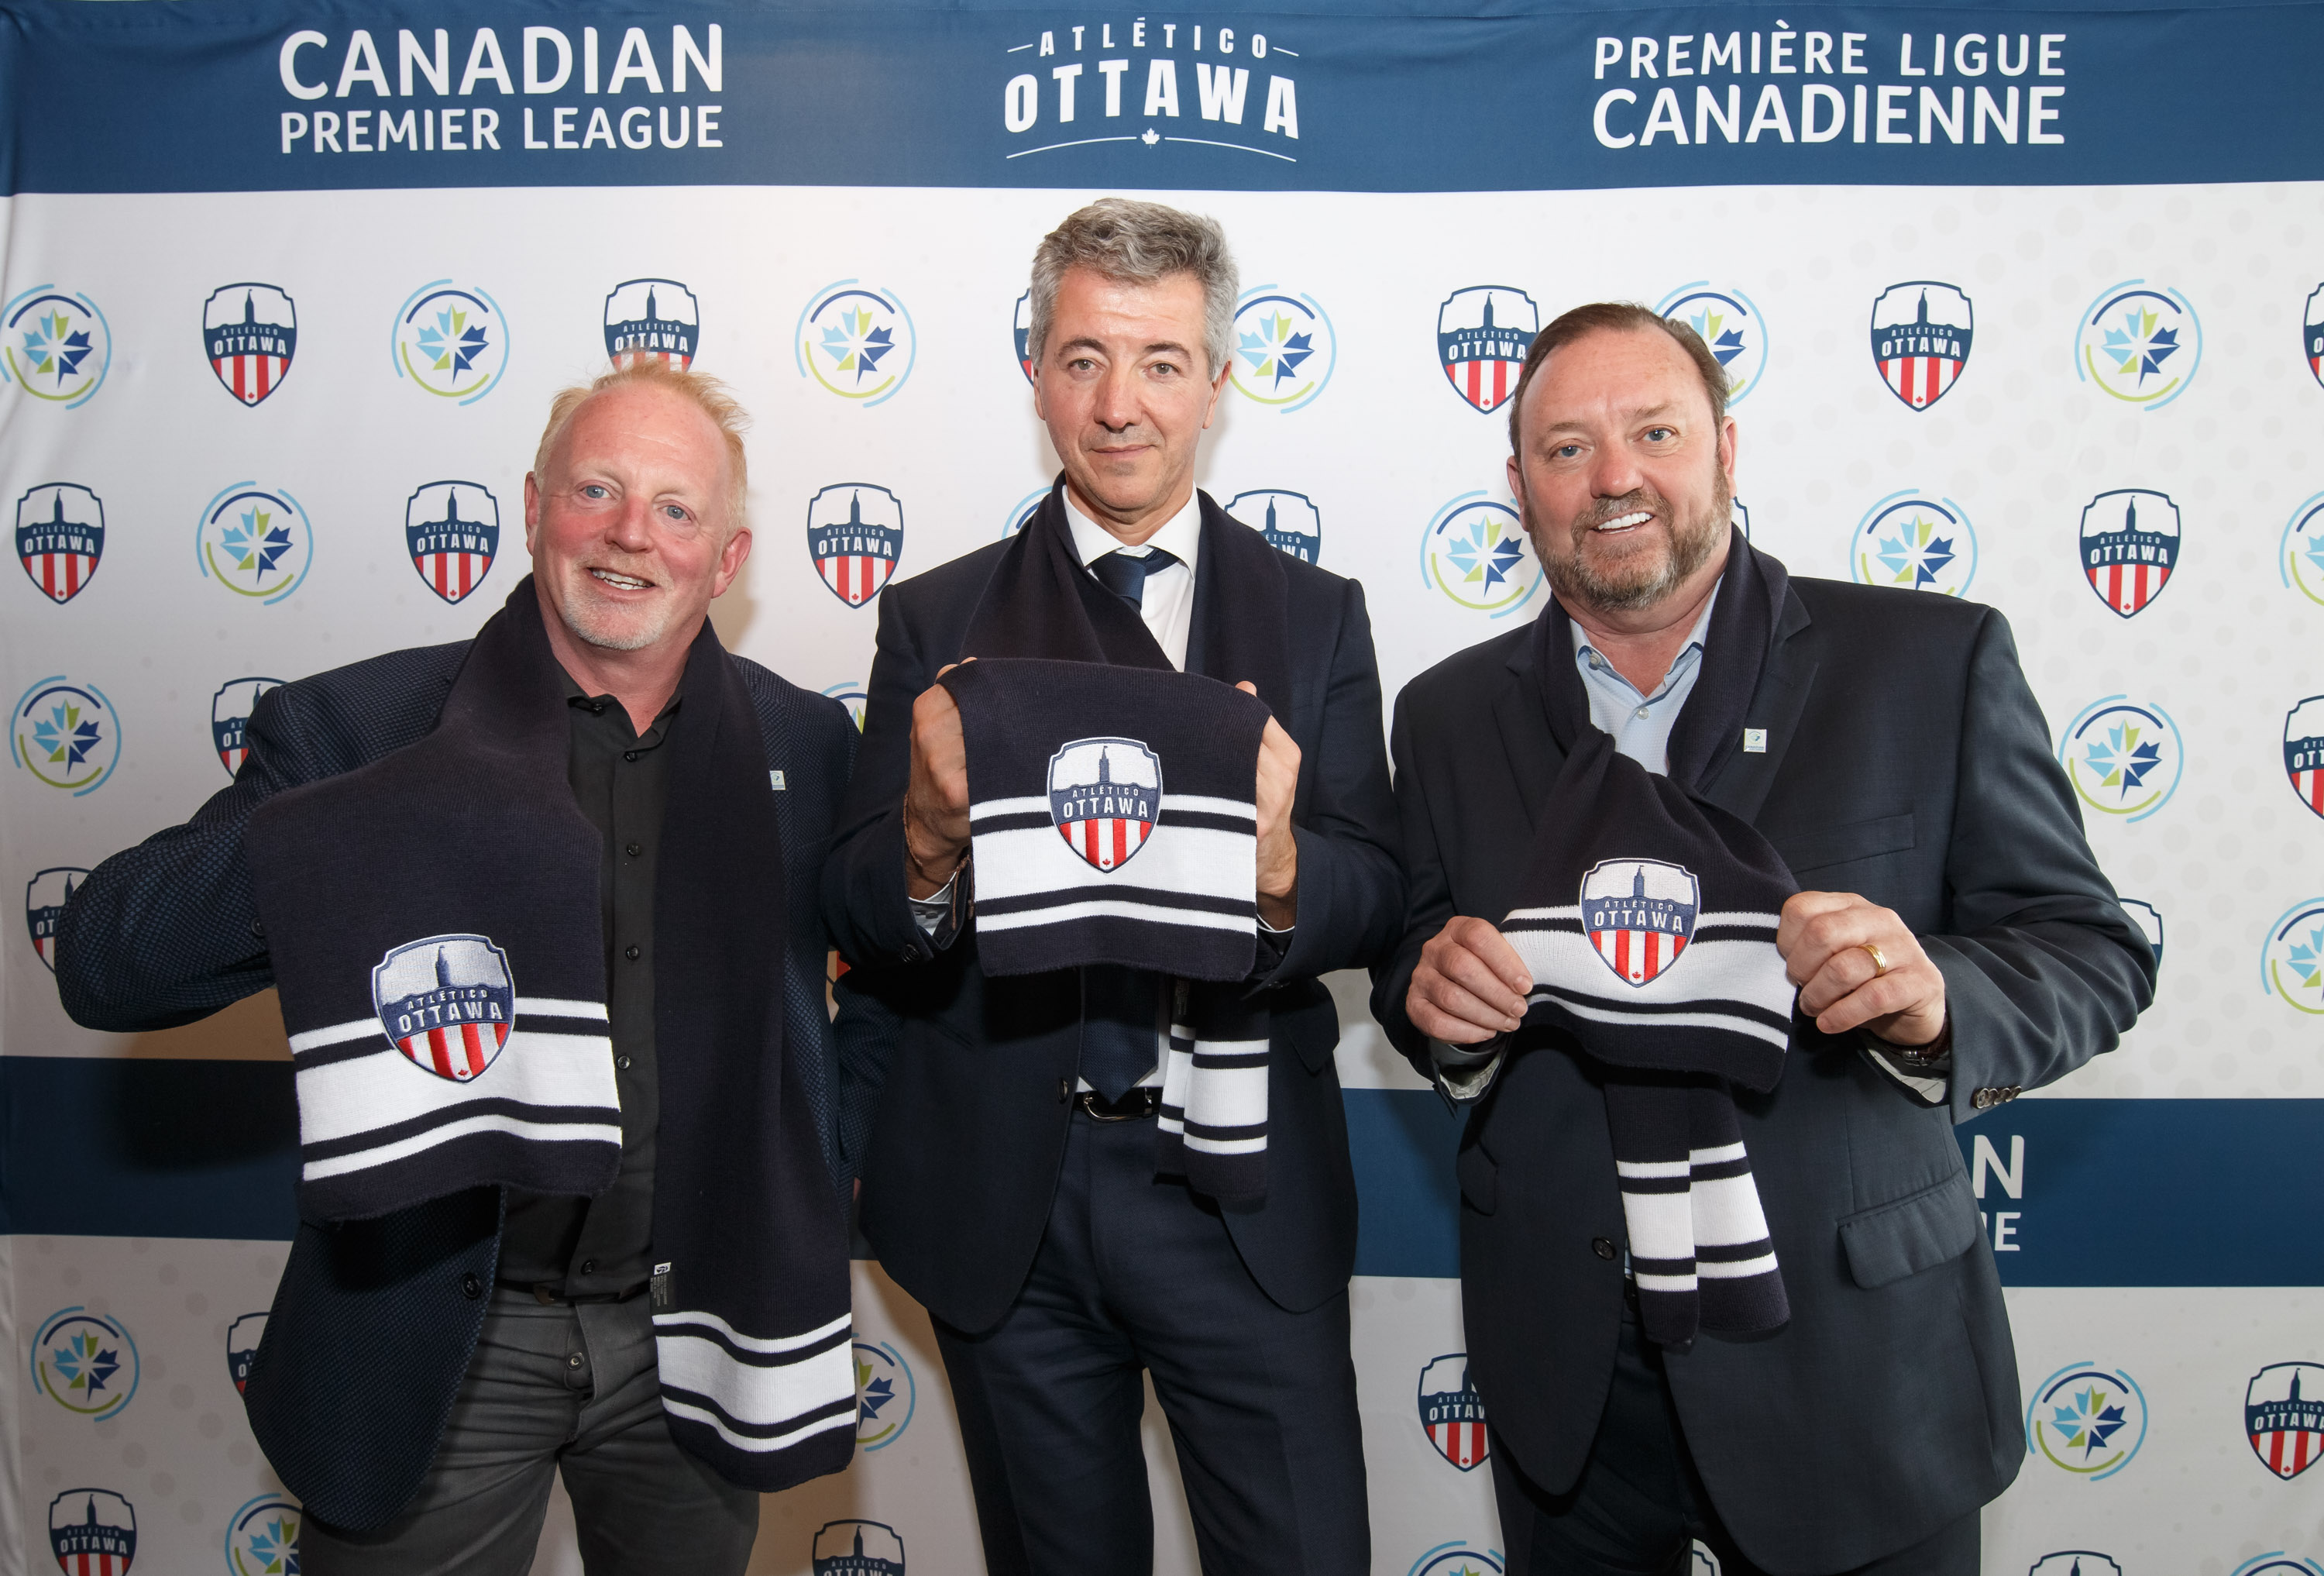 Atlético Ottawa strategic partner Jeff Hunt, Canadian Premier League commissioner David Clanachan and Club Atlético de Madrid CEO Miguel Ángel Gil Marín. (CPL).